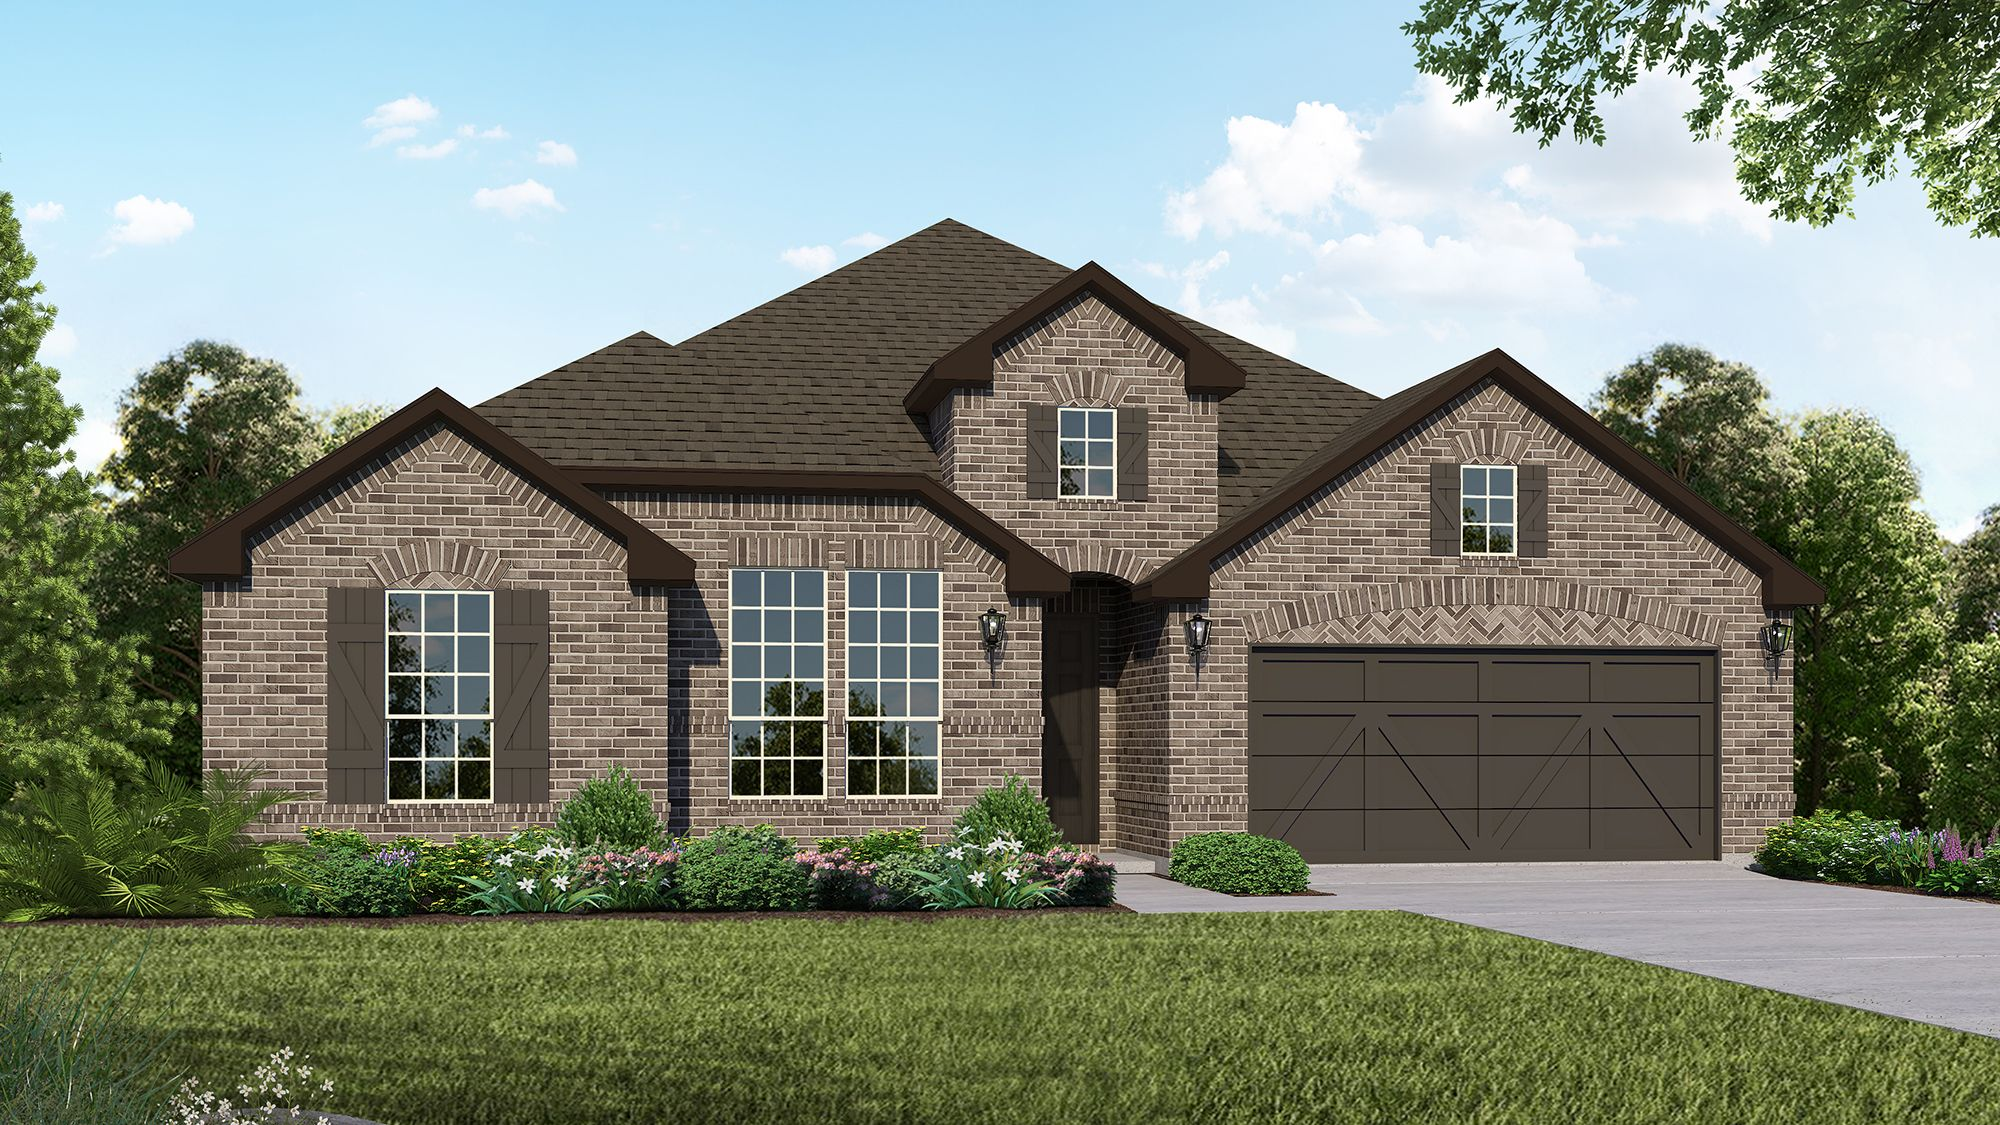 Plan 1685 Elevation B by American Legend Homes